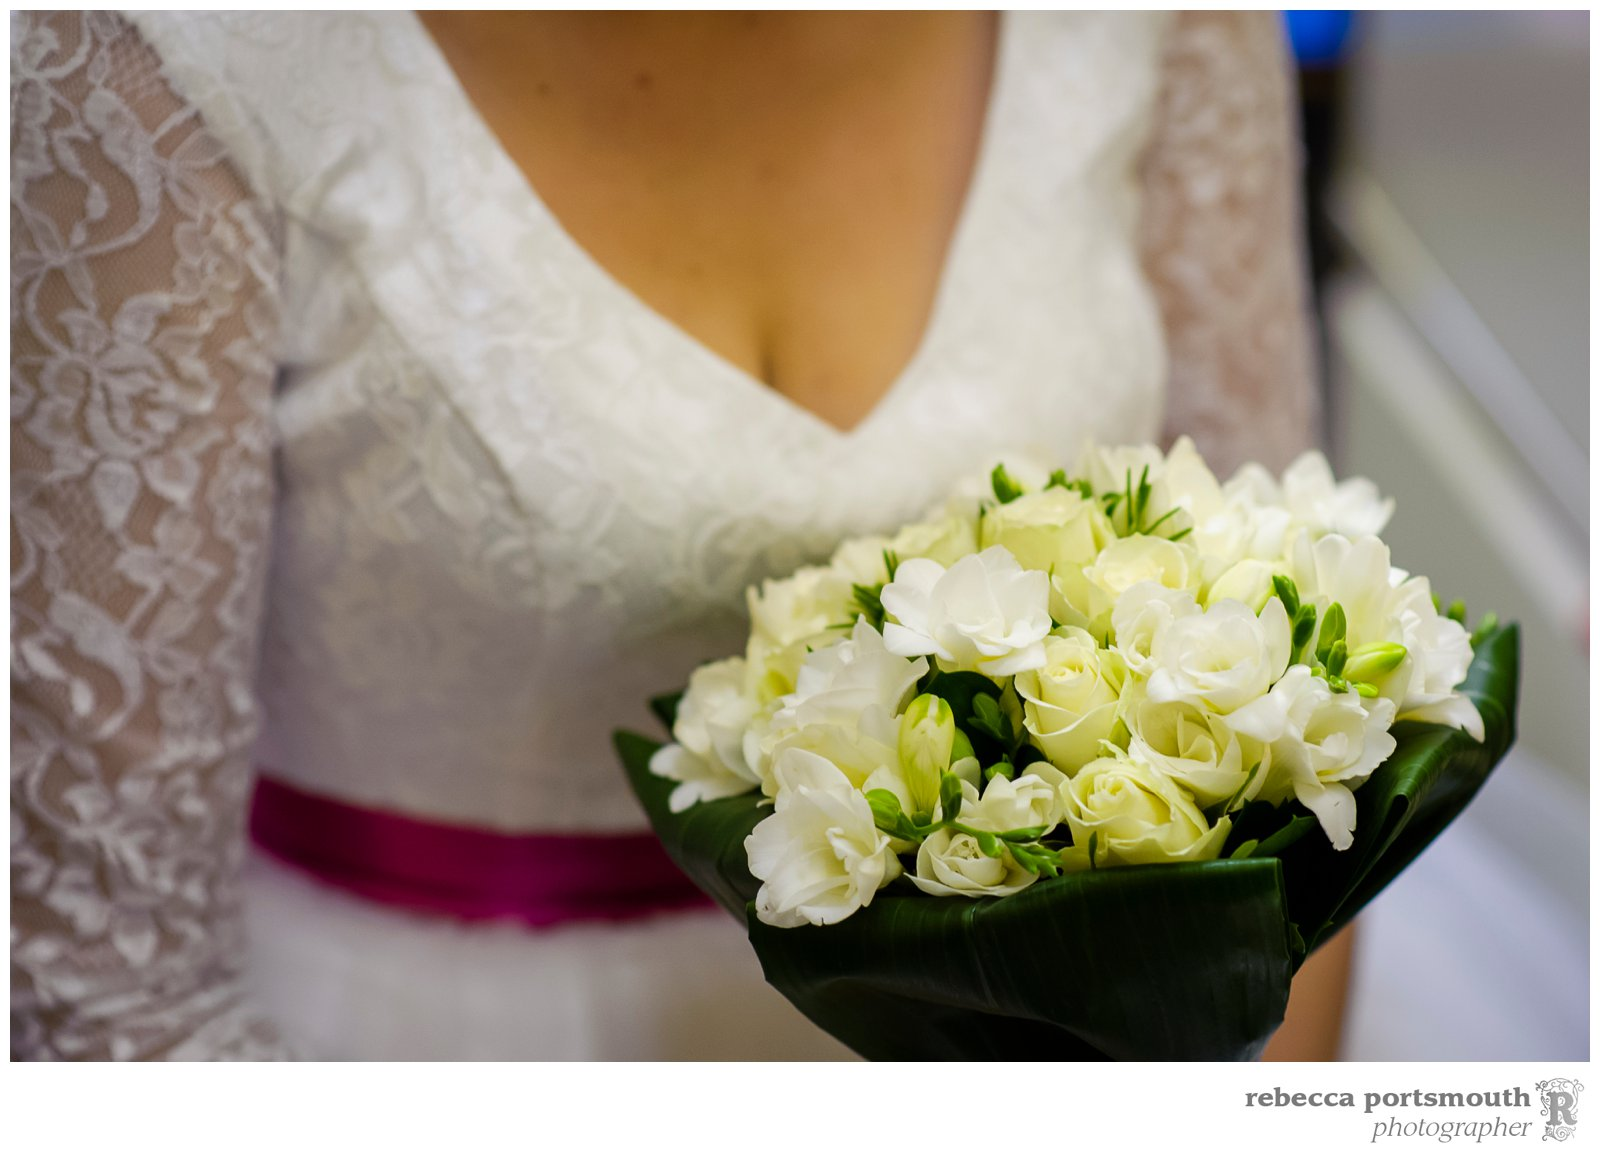 A bride and her white wedding bouquet at Victoria Hall in the Woolwich Town Hall, home of Greenwich Registry Office.